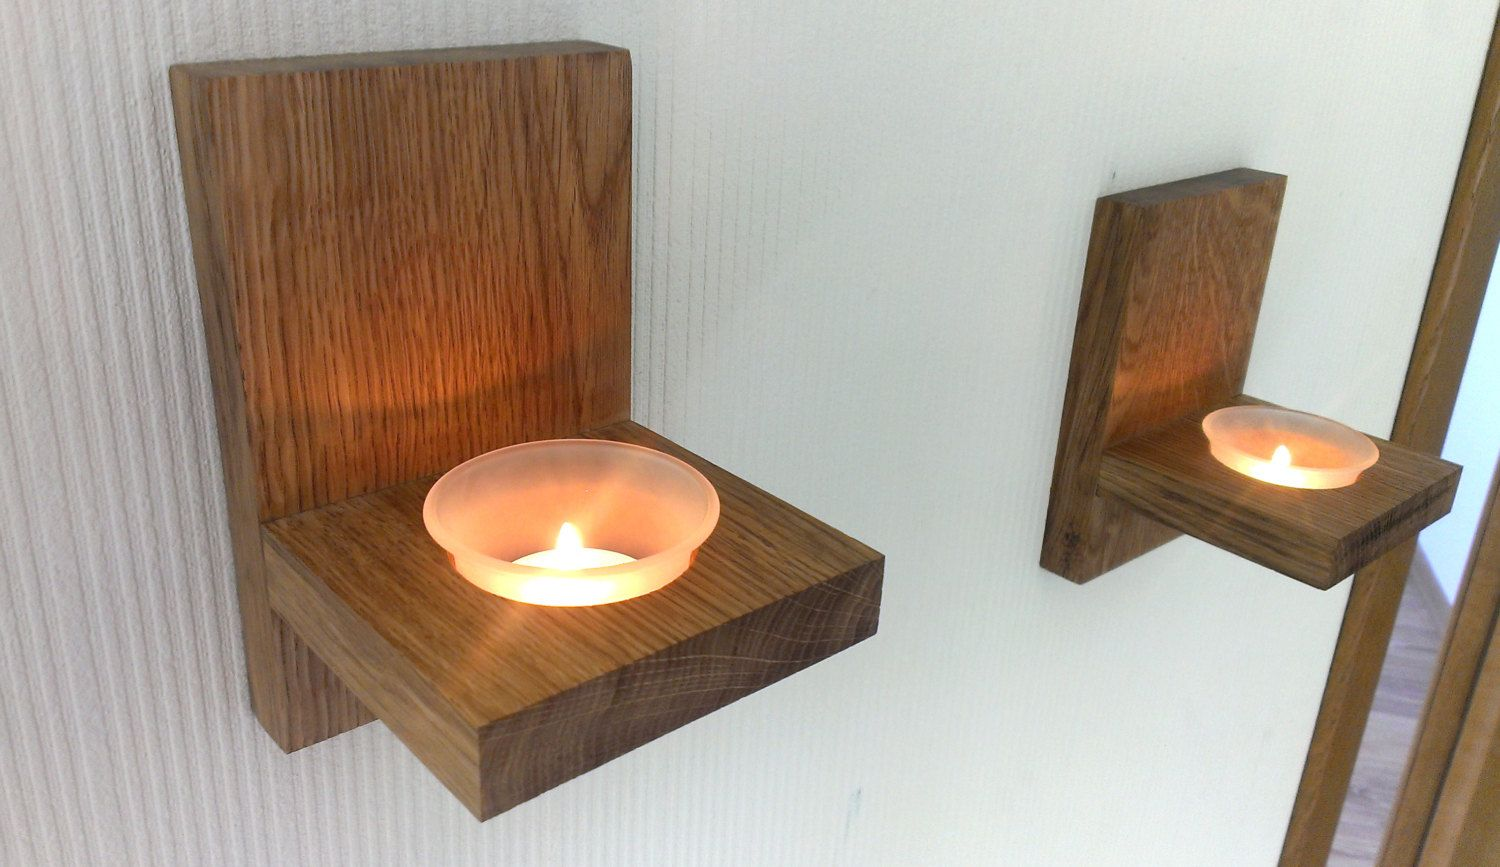 Modern Wall Mount Tea Light Candle Holder Oak Candle Holder Wooden Candle Holders Wall Candle Holders Wall Mounted Candle Holders